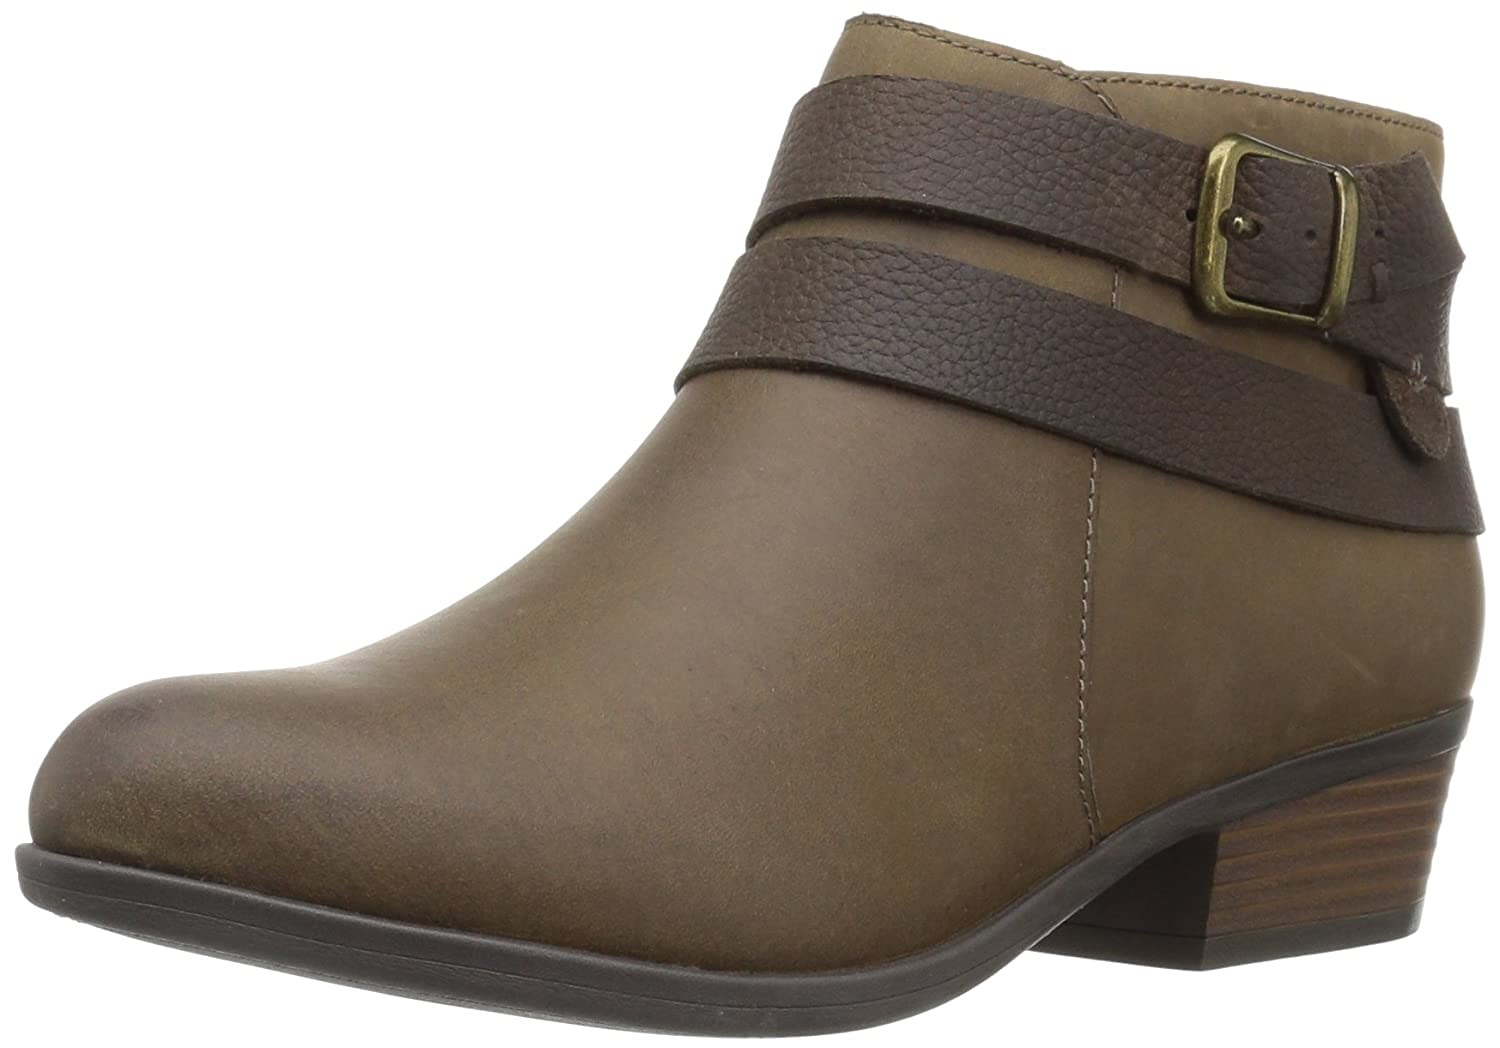 CLARKS Women's Addiy Cora Ankle Bootie B01NCOH5VP 10 W US|Olive